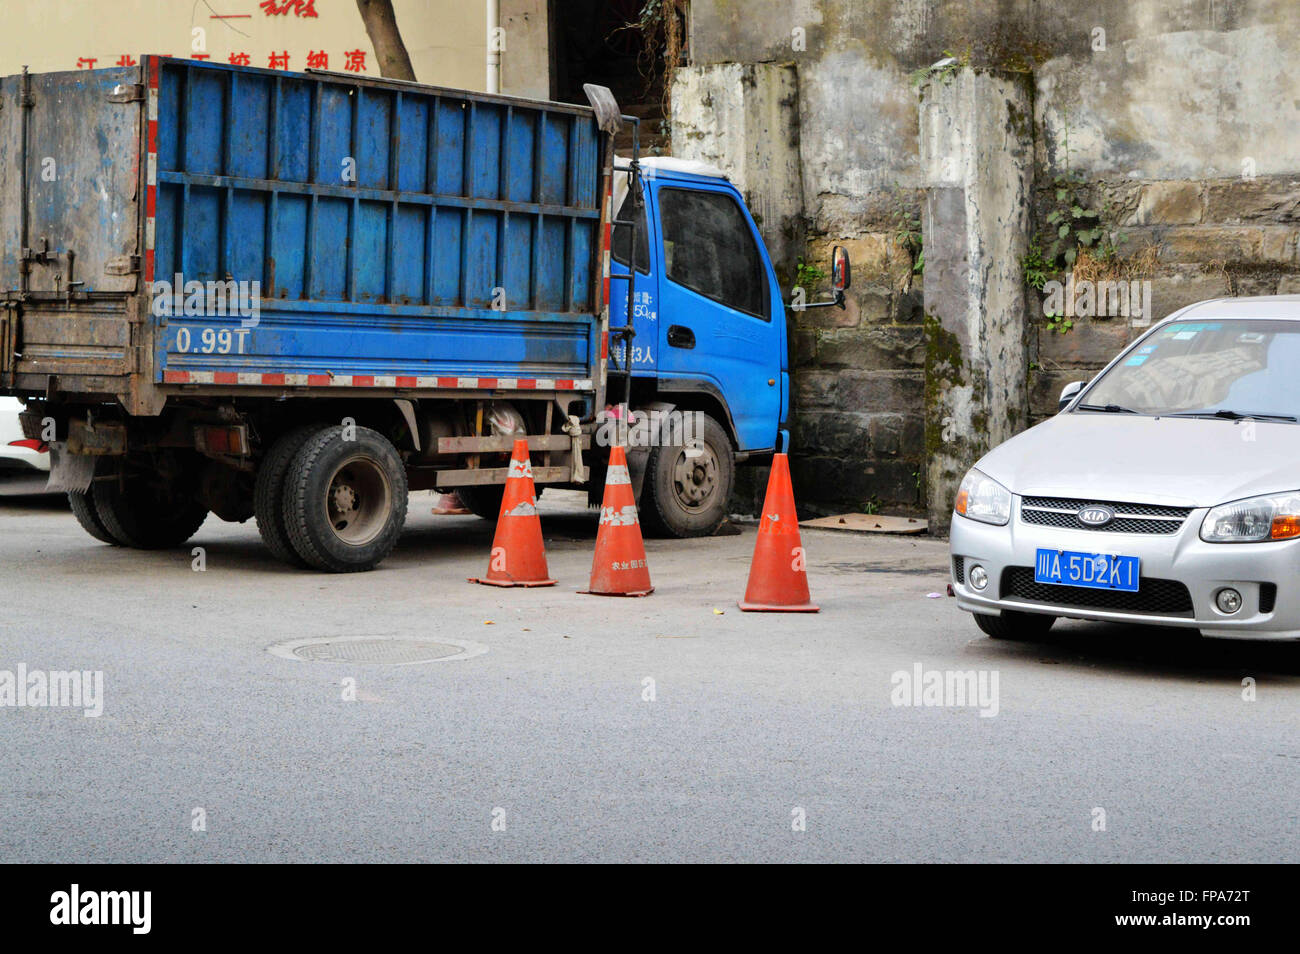 Chongqing, CHINA. 17th Mar, 2016. March 17 2016: (EDITORIAL USE ONLY. CHINA OUT) It's an old community so no parking Stock Photo